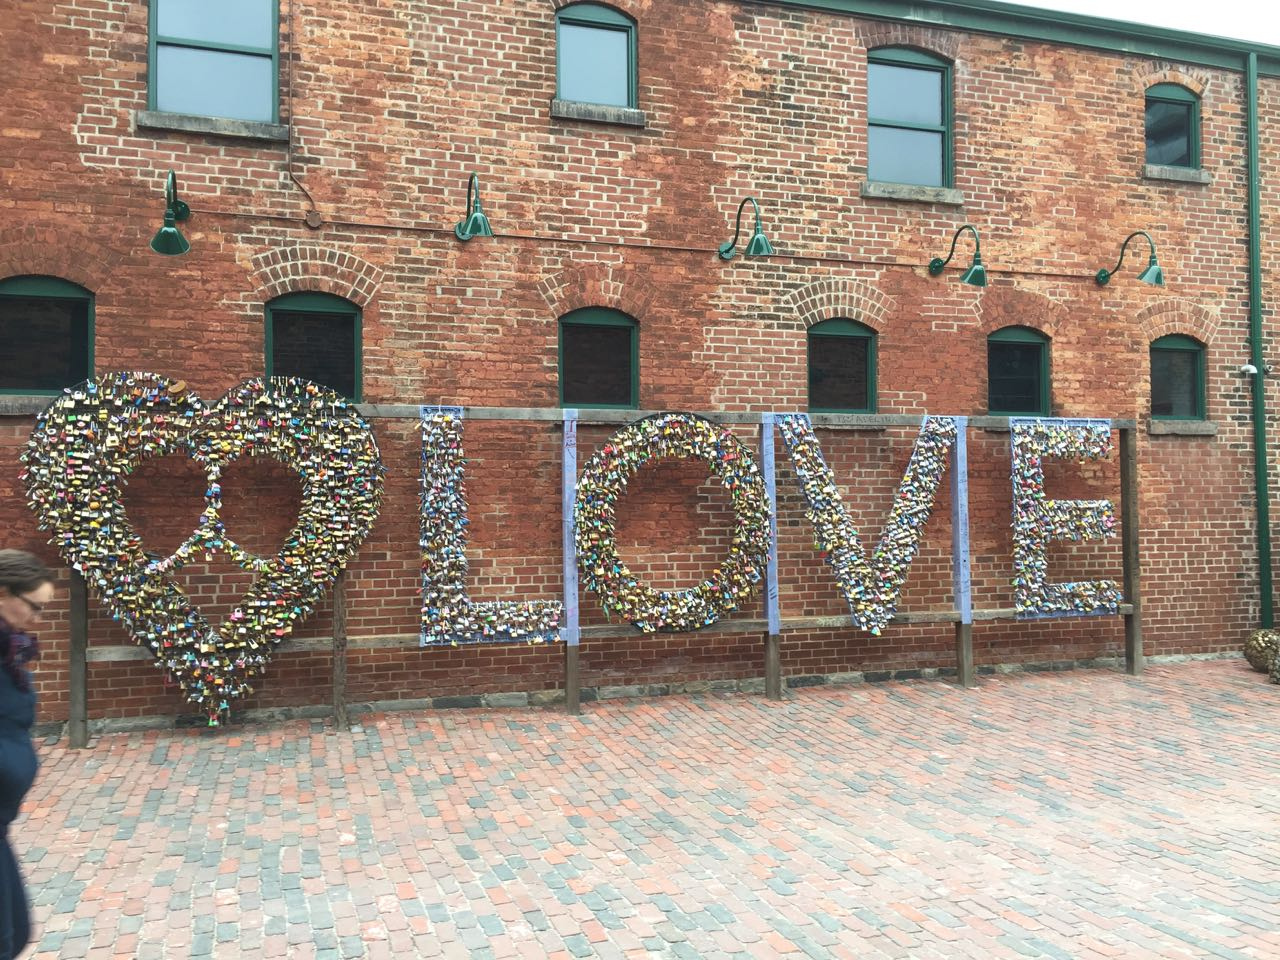 The word 'love' made out of padlocks